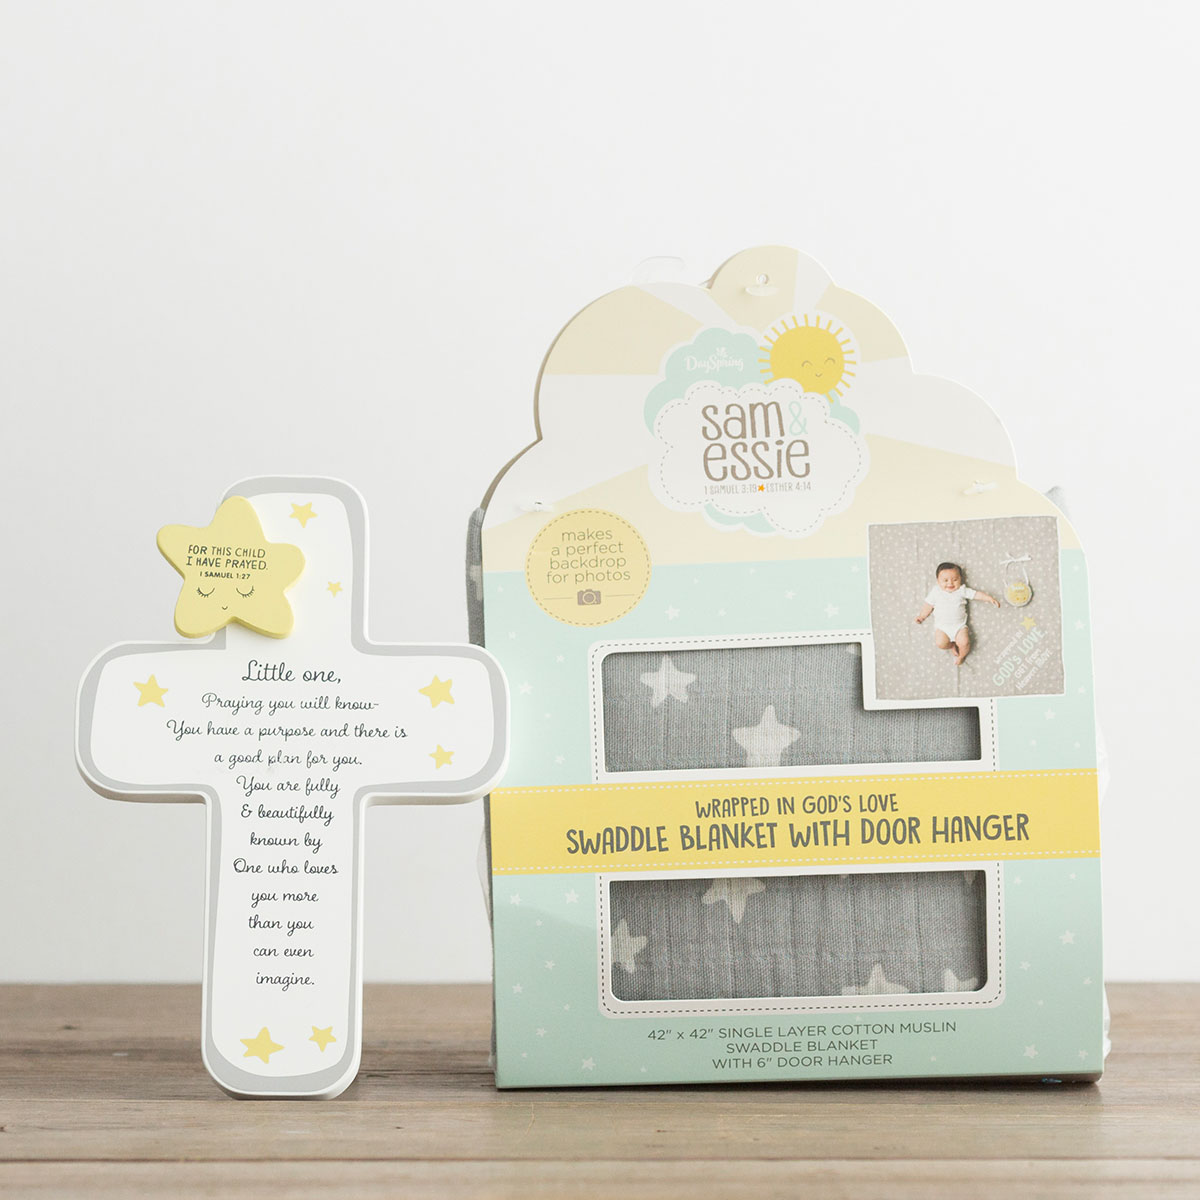 Sam & Essie - Wrapped in God's Love - Swaddle Blanket and Cross Gift Set